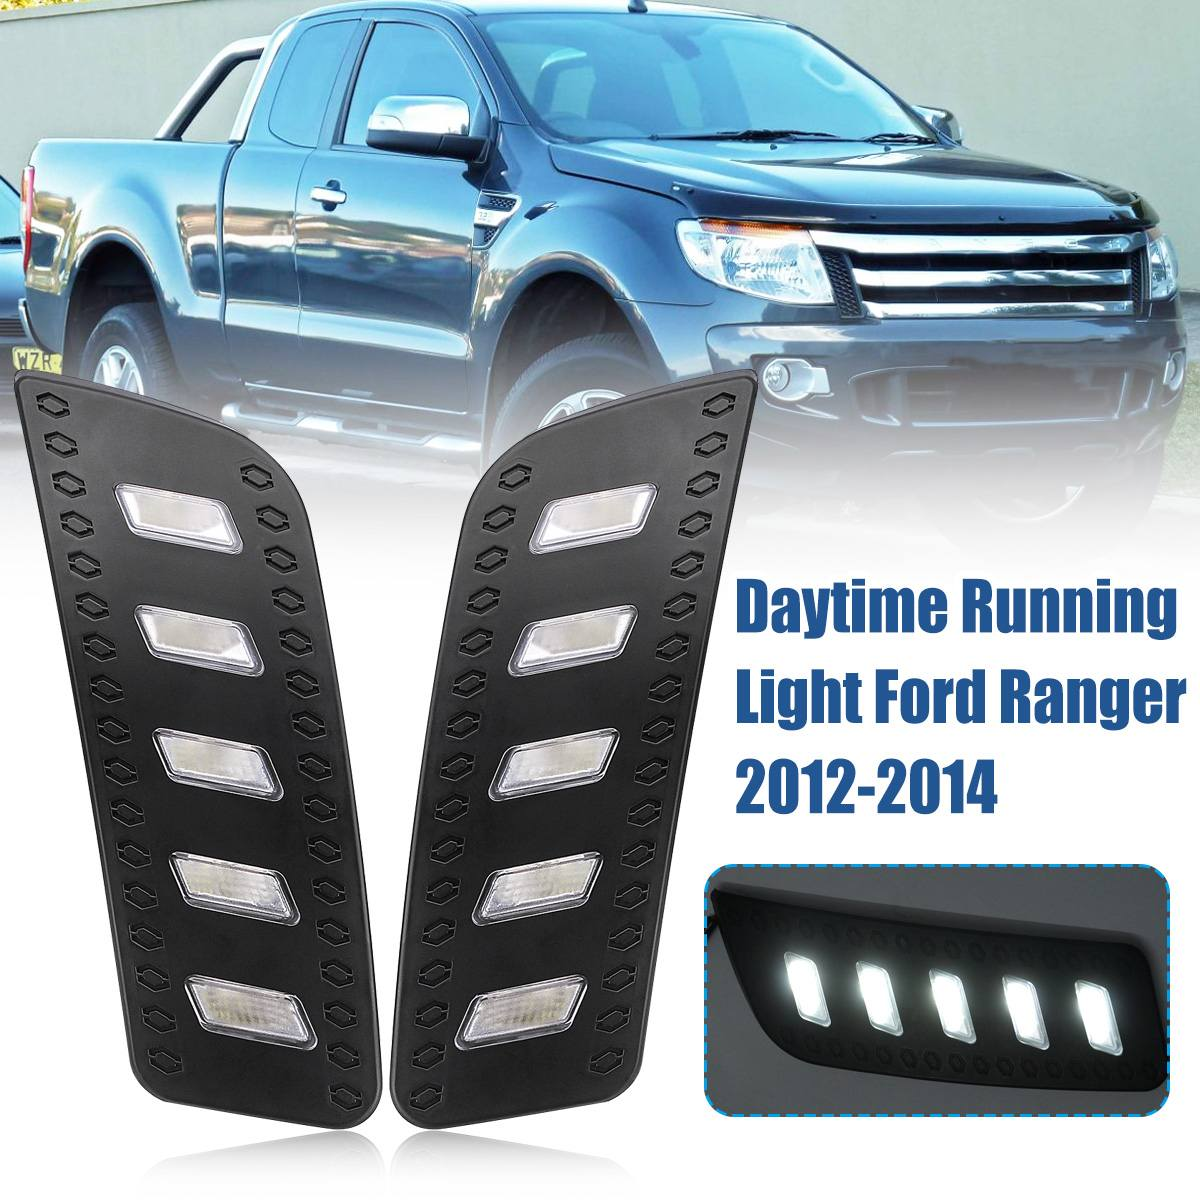 1Pair Front DRL For Ford Ranger 2012 2013 2014 Front Grills Light Daytime Running Light Fog Lamp Driving Car Styling Accessories